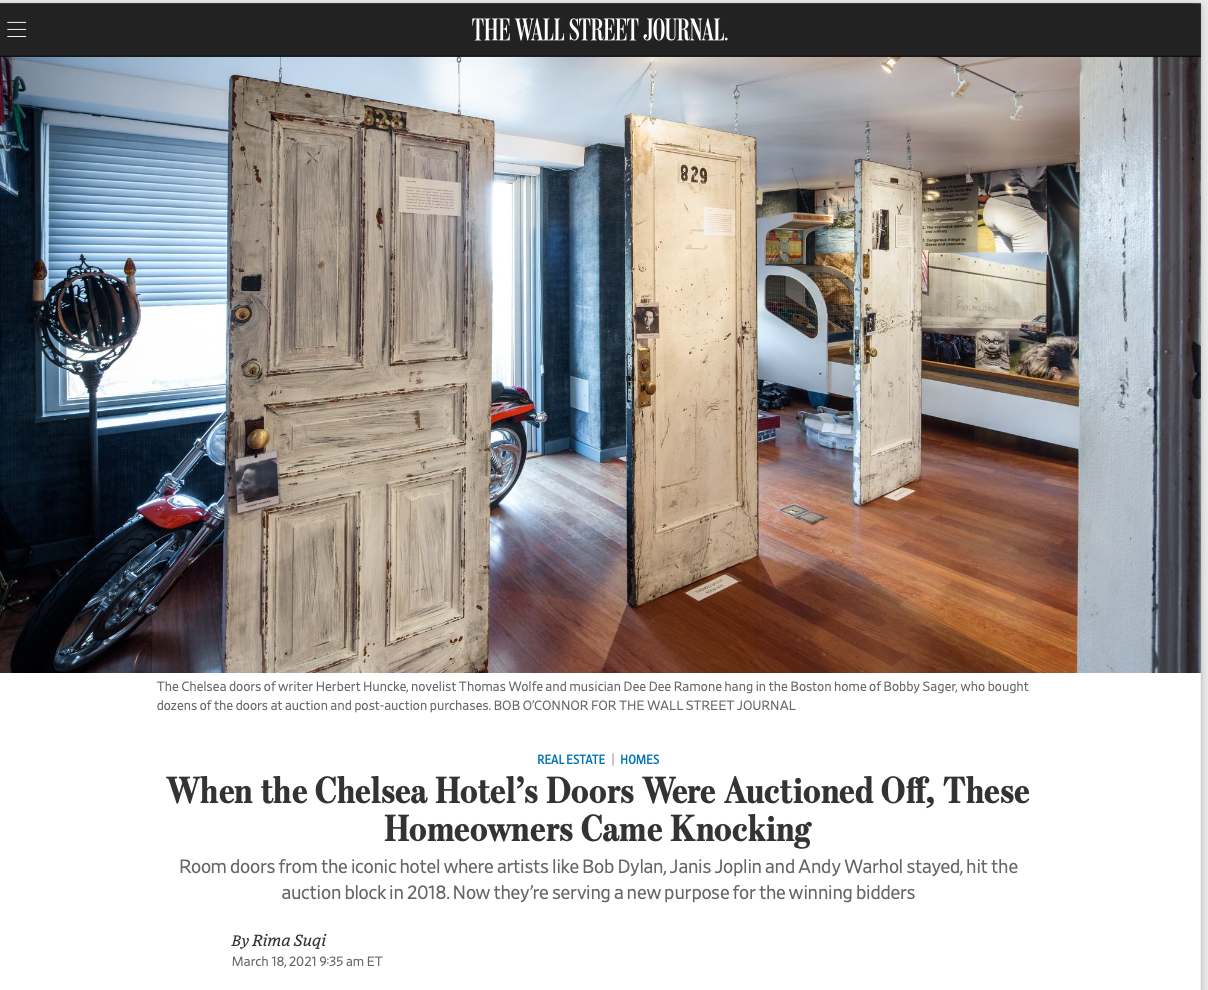 Bobby Sager, Rima Suqi, Chelsea Hotel, Wall Street Journal, Mansion section